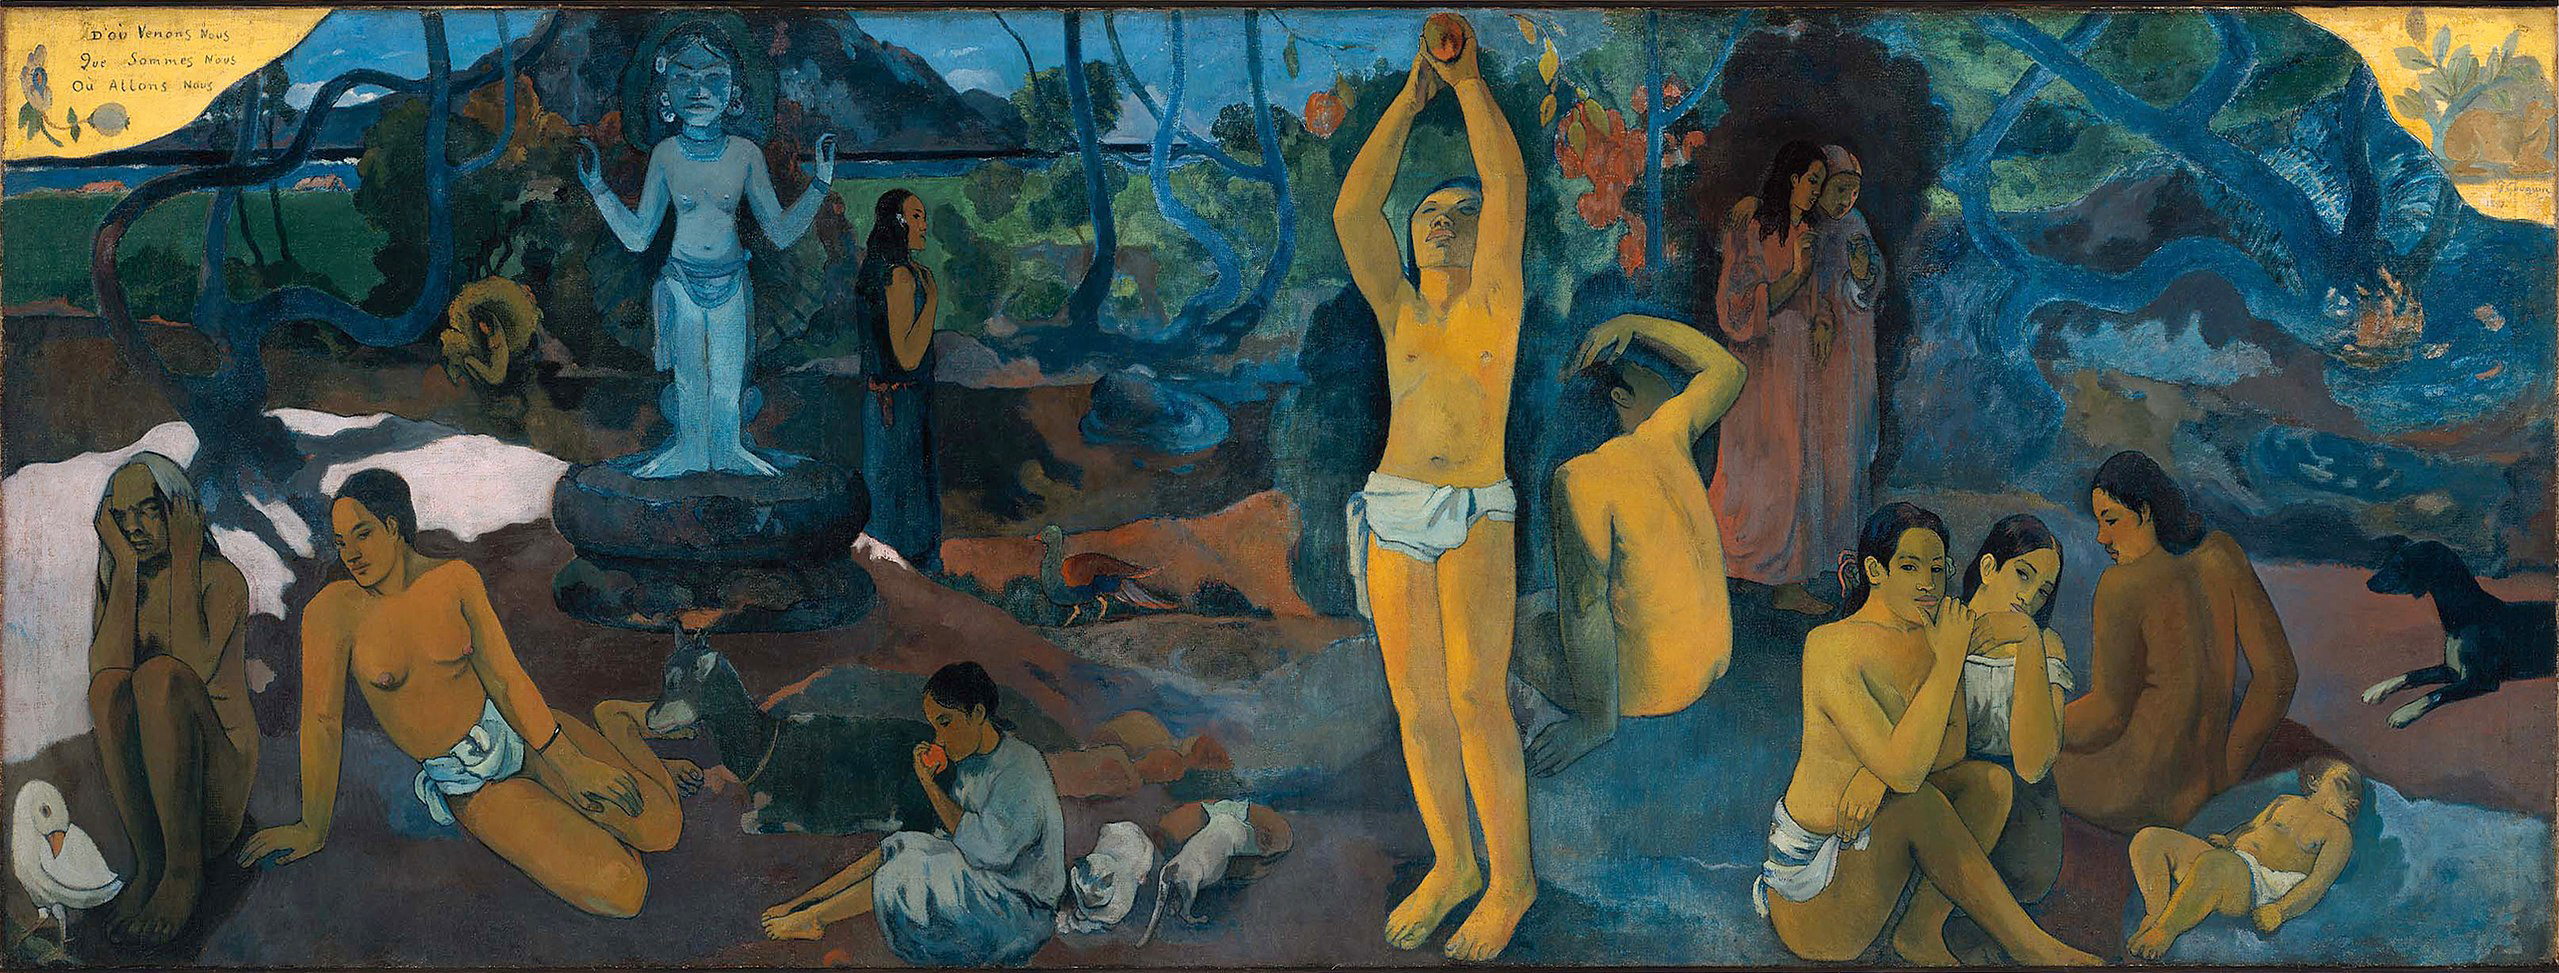 https://media.thisisgallery.com/wp-content/uploads/2018/12/paulgauguin_02.jpg